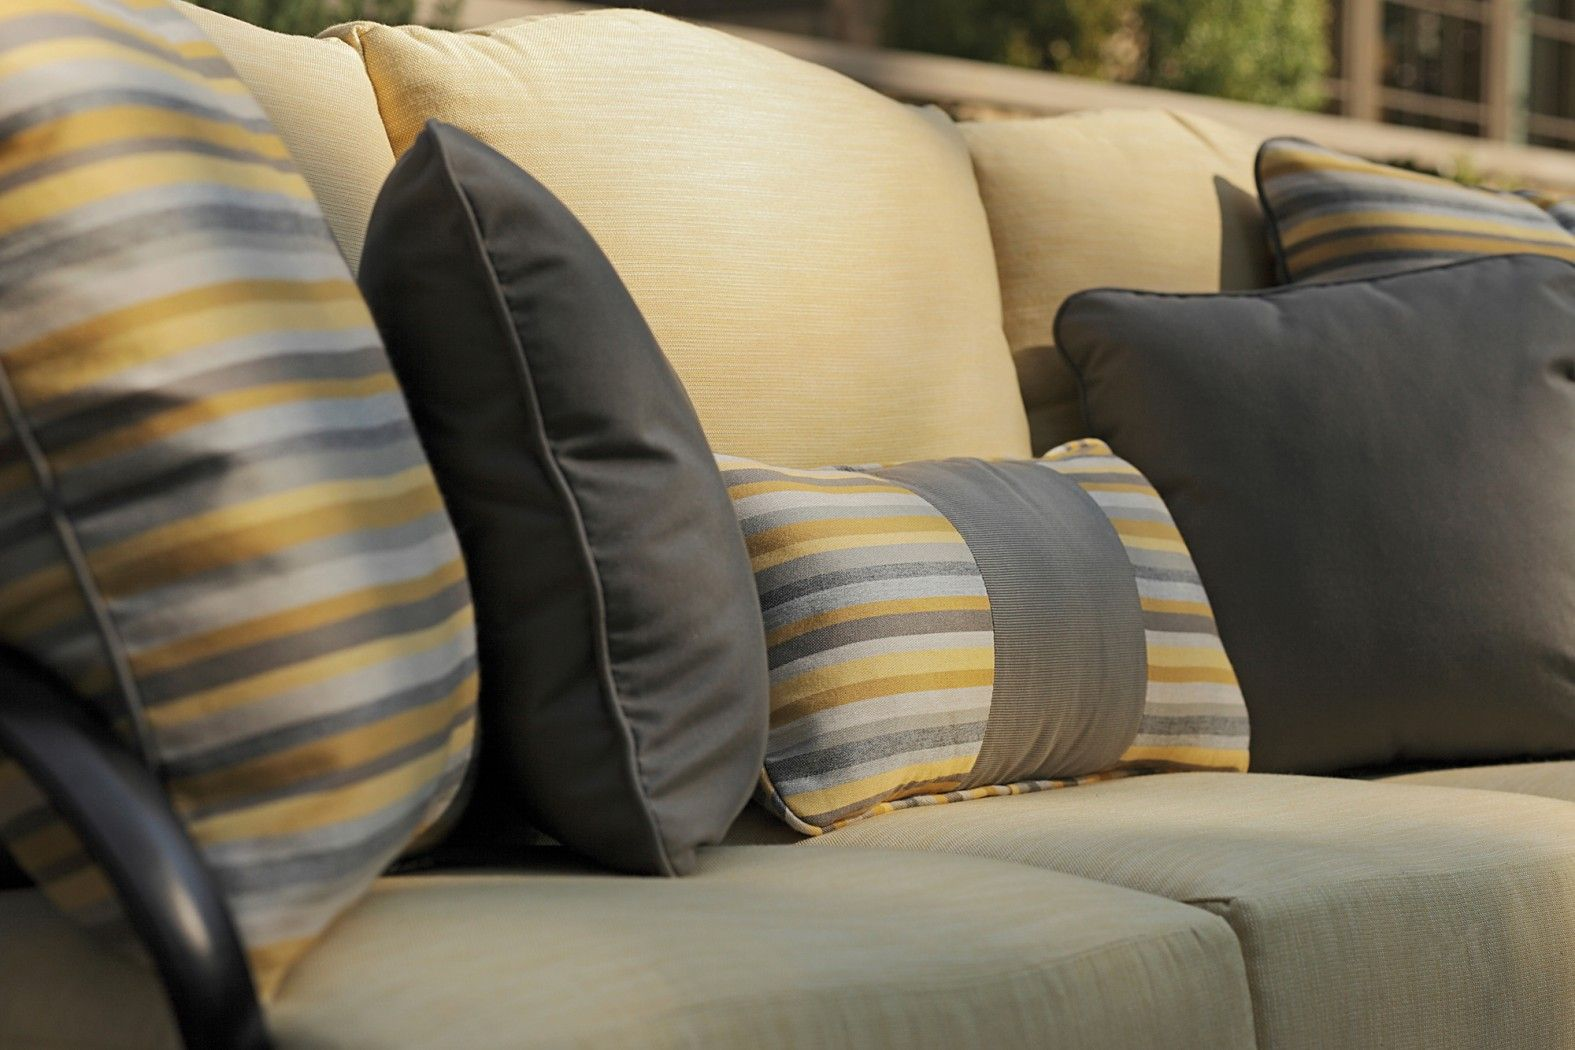 How To Remove Mildew From Outdoor Furniture Cleaning Outdoor